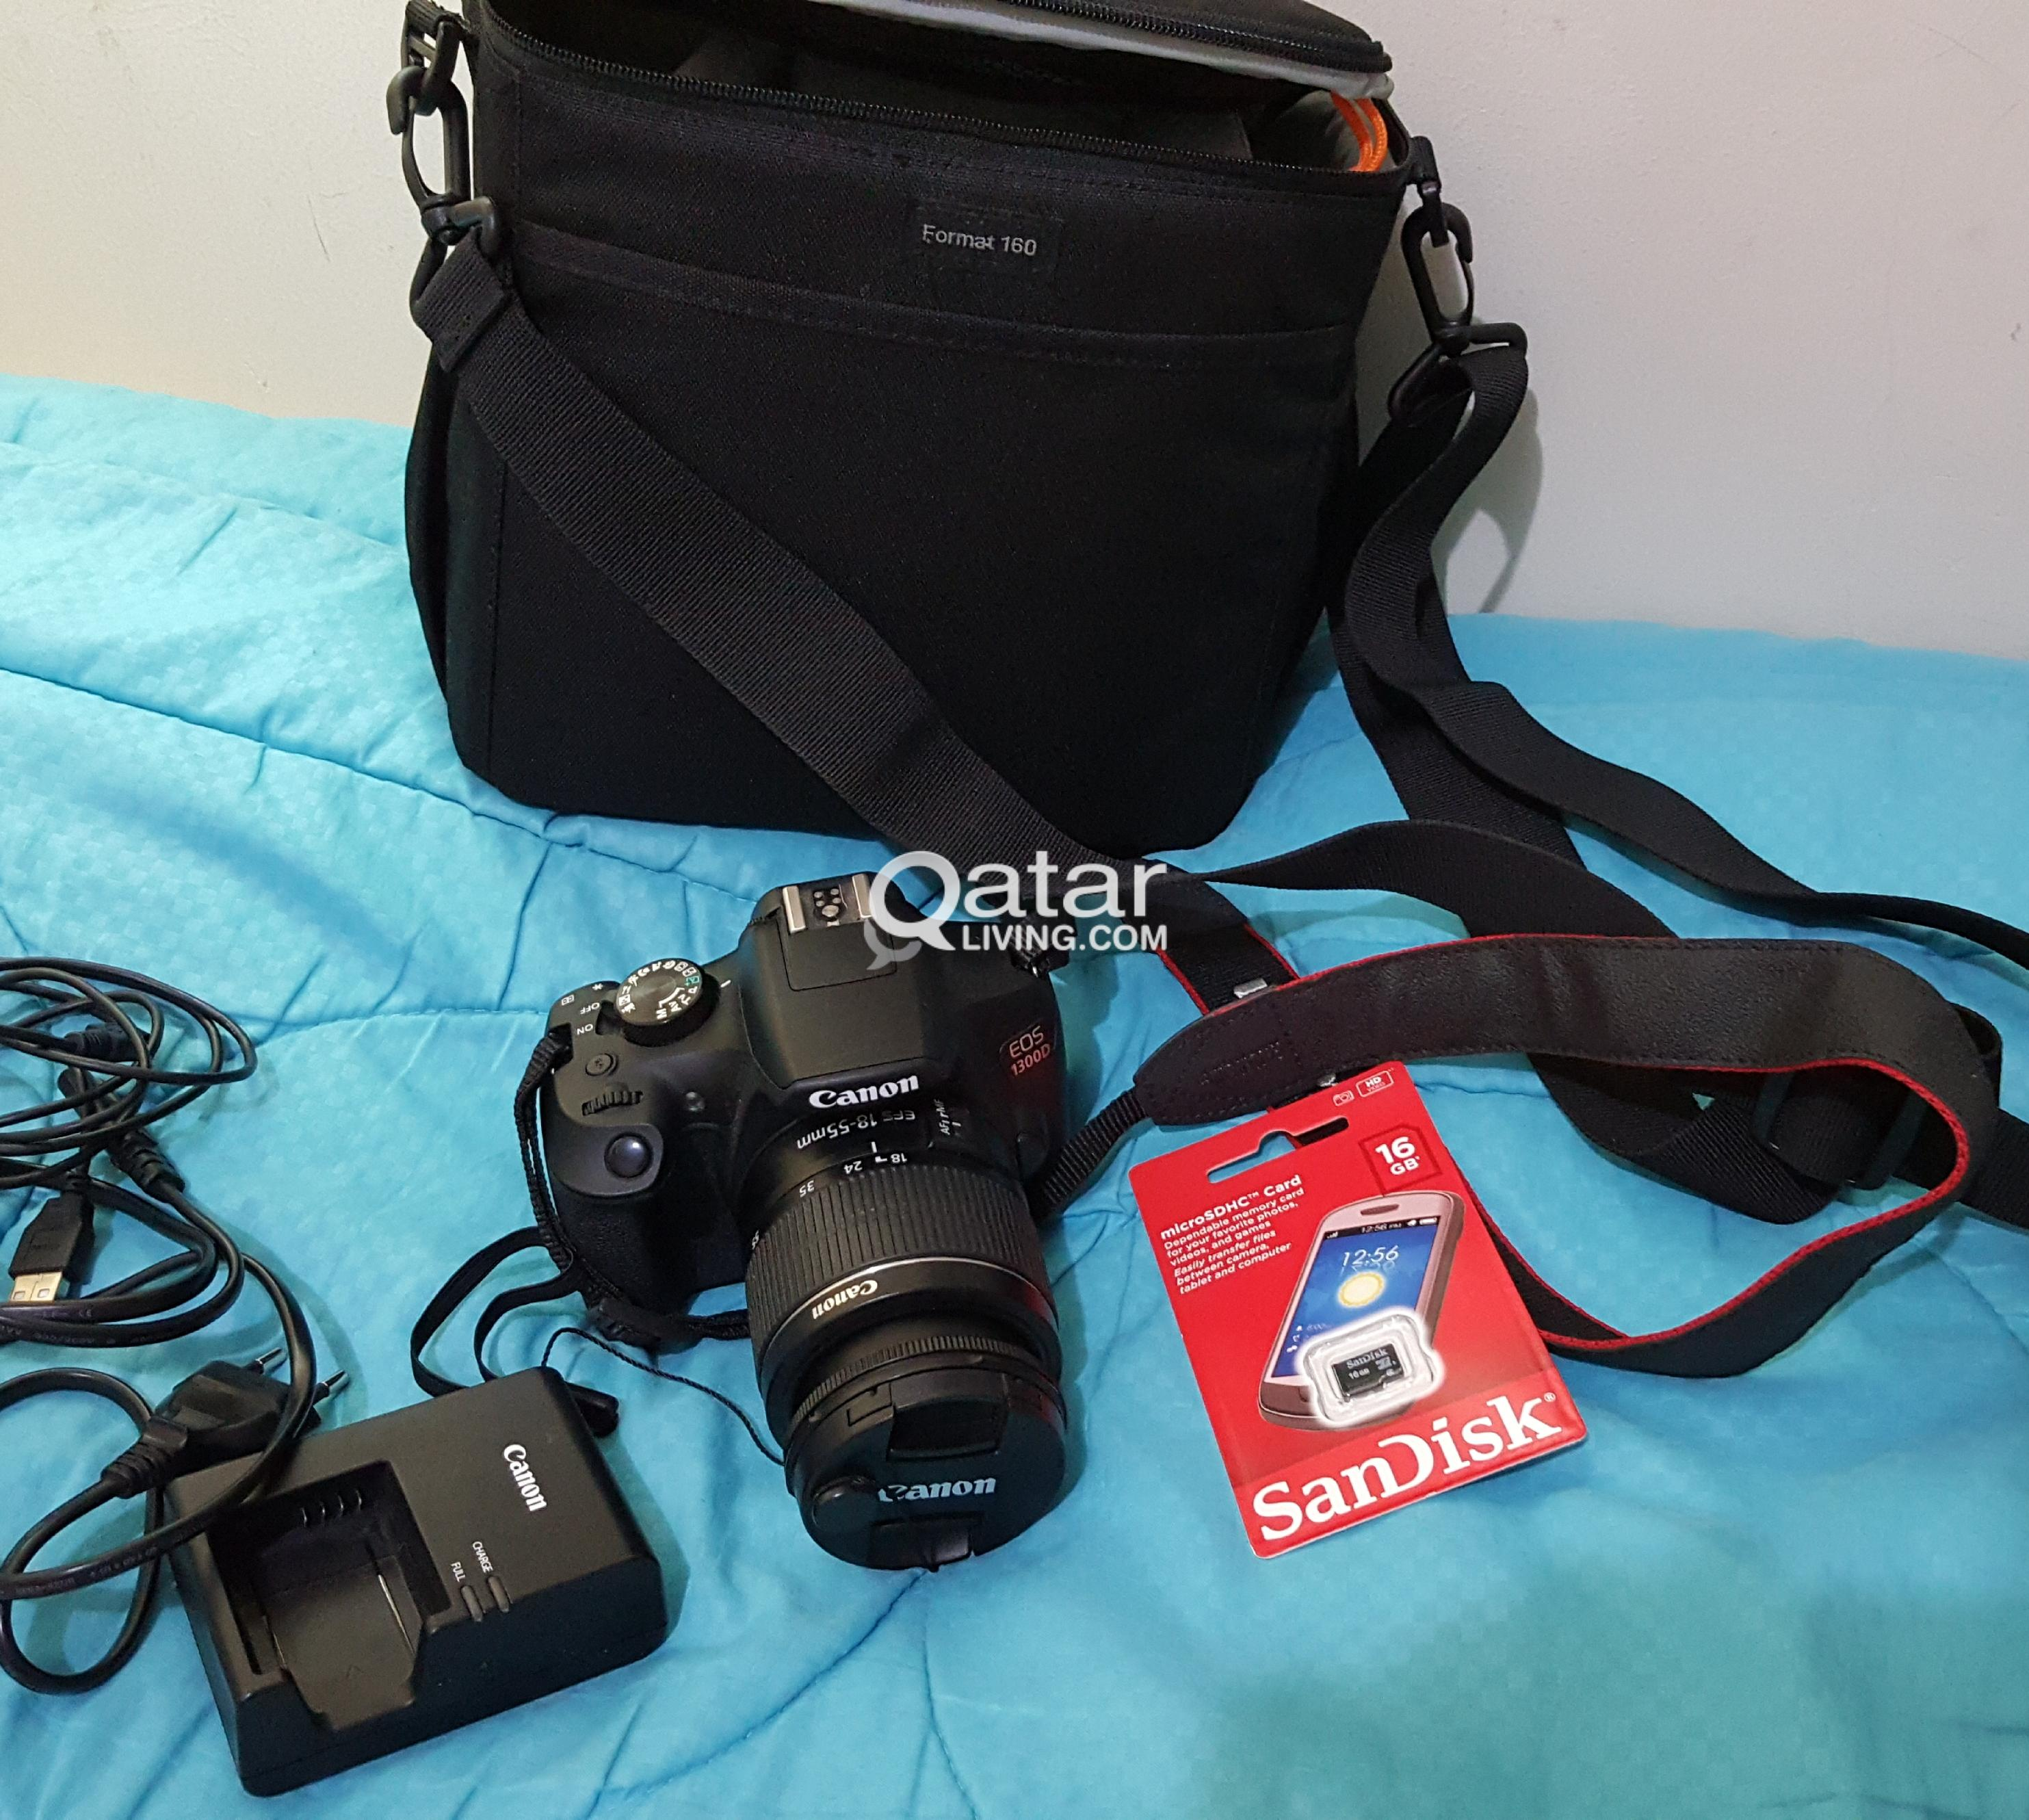 Canon Eos 1300d Dslr Camera Efs 18 55mm Dc Qatar Living Digital With Lens Is Ii Title